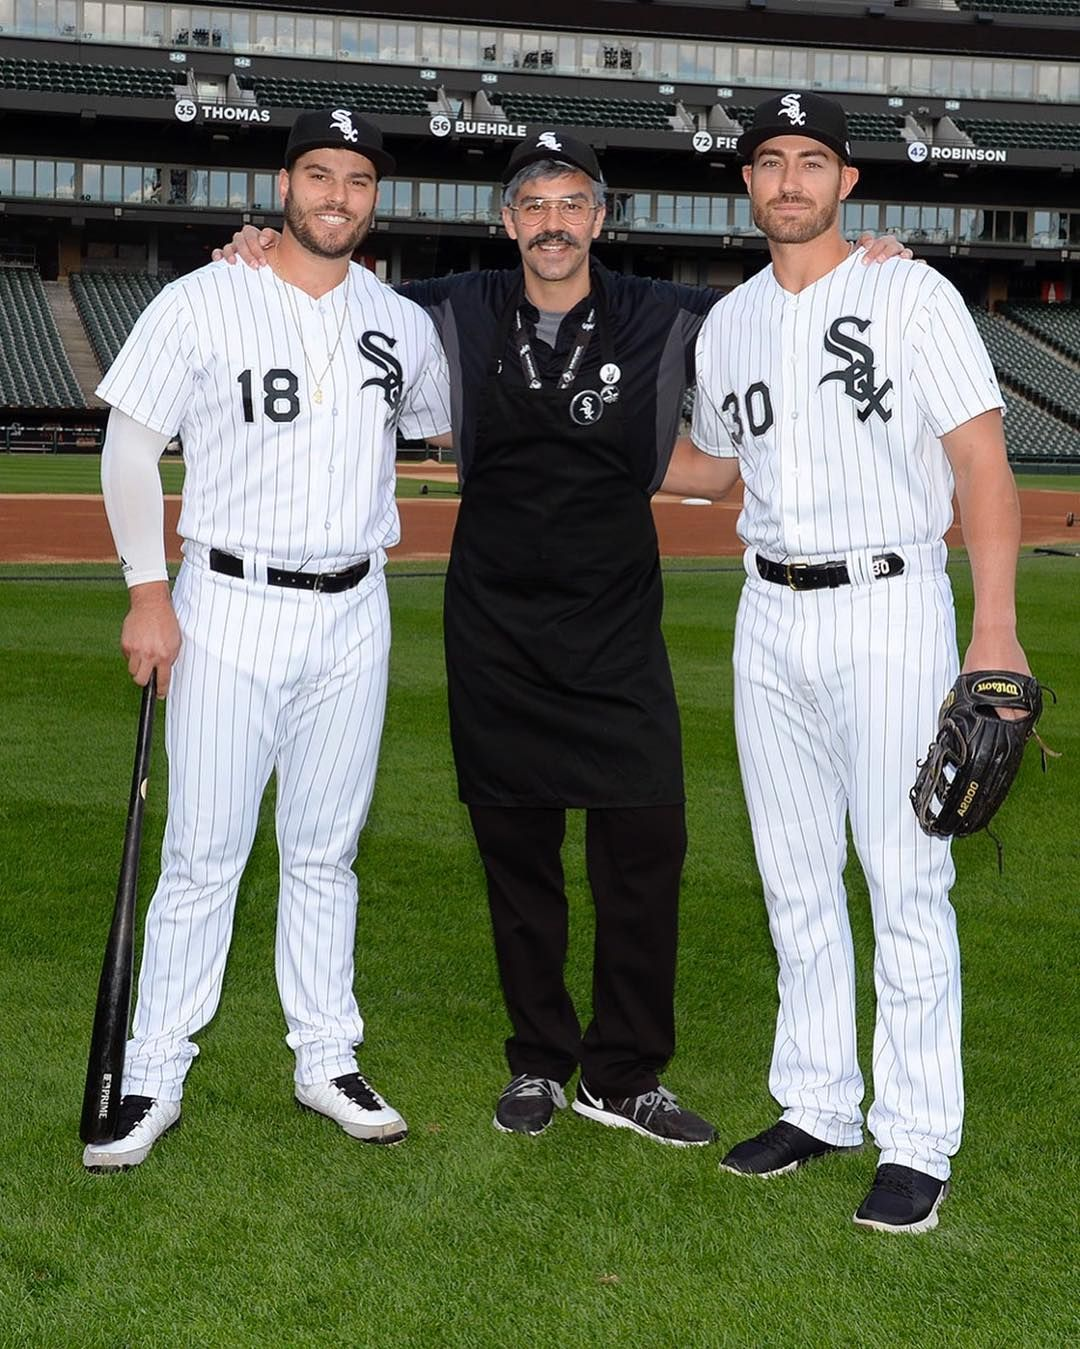 Missing Nickydelmonico And Palkadaniel Catch Them On The Carbonaroeffect With Carbonaro Tonight At 9 00 P Chicago White Sox White Sock Carbonaro